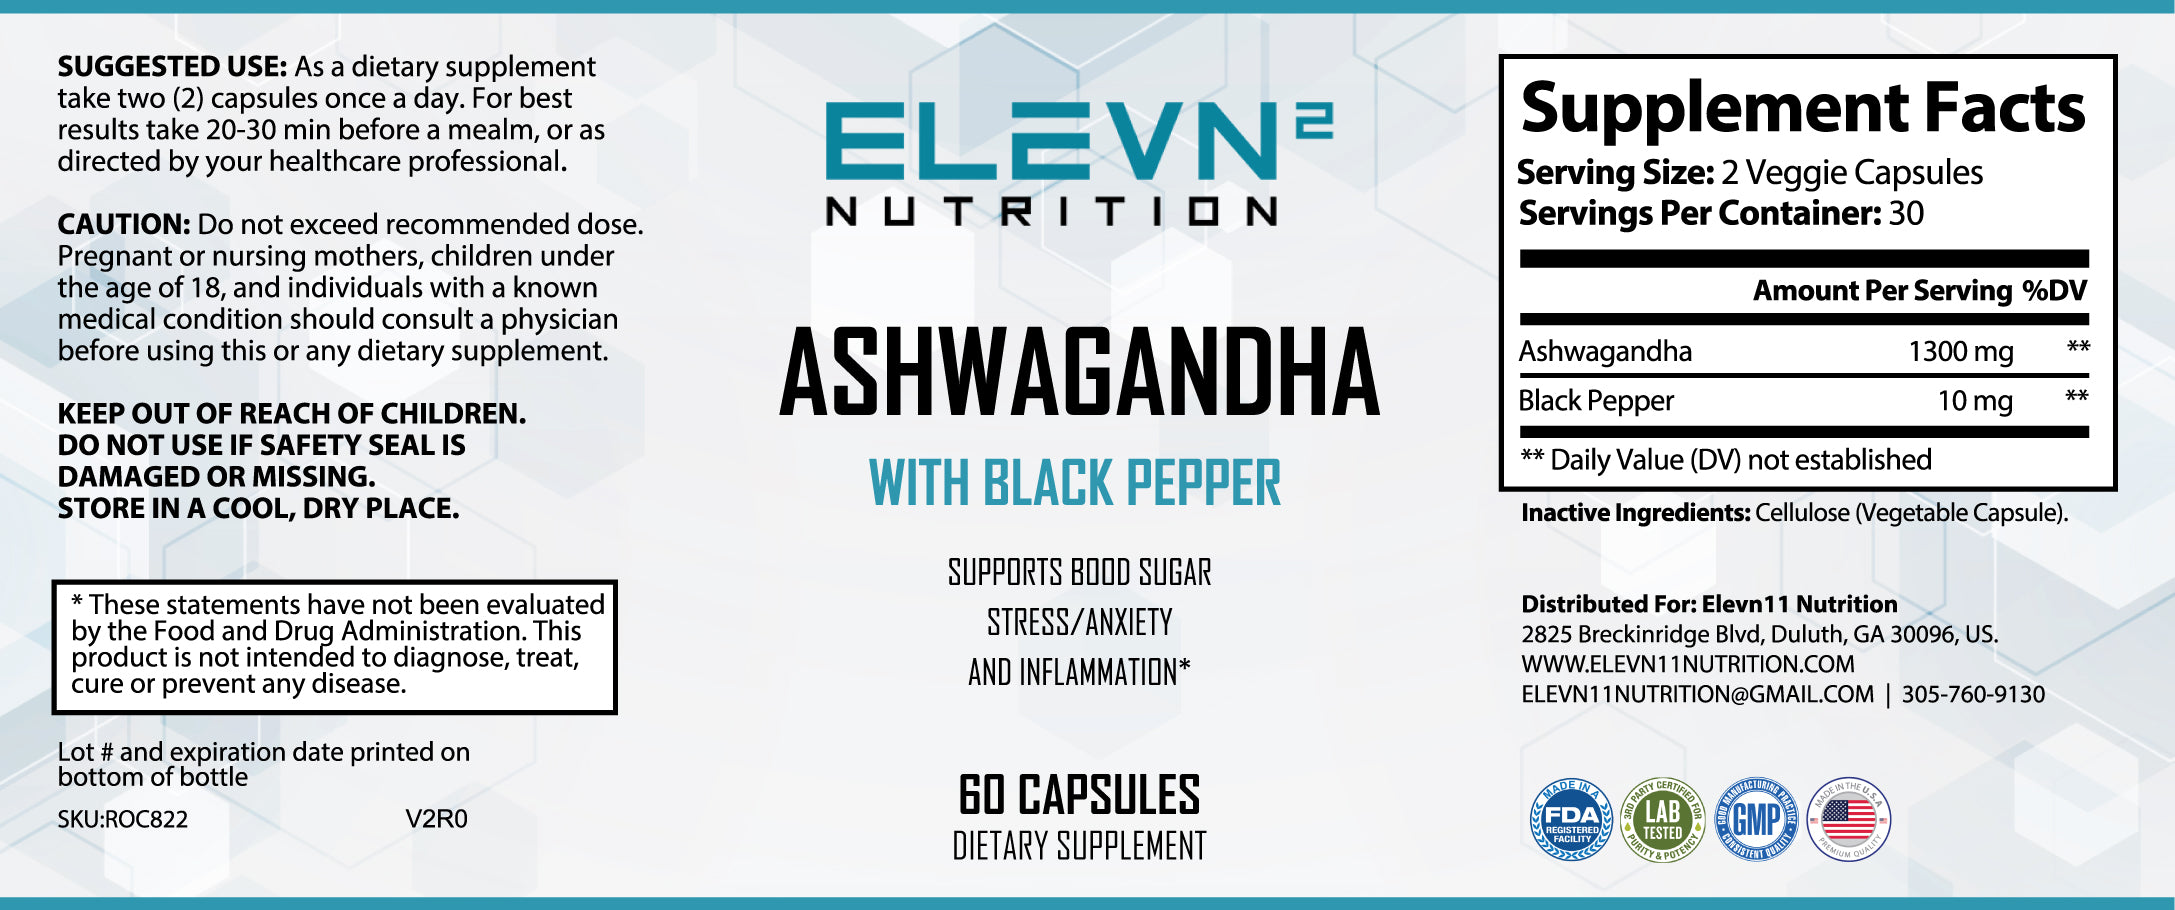 Ashwagandha with Black Pepper